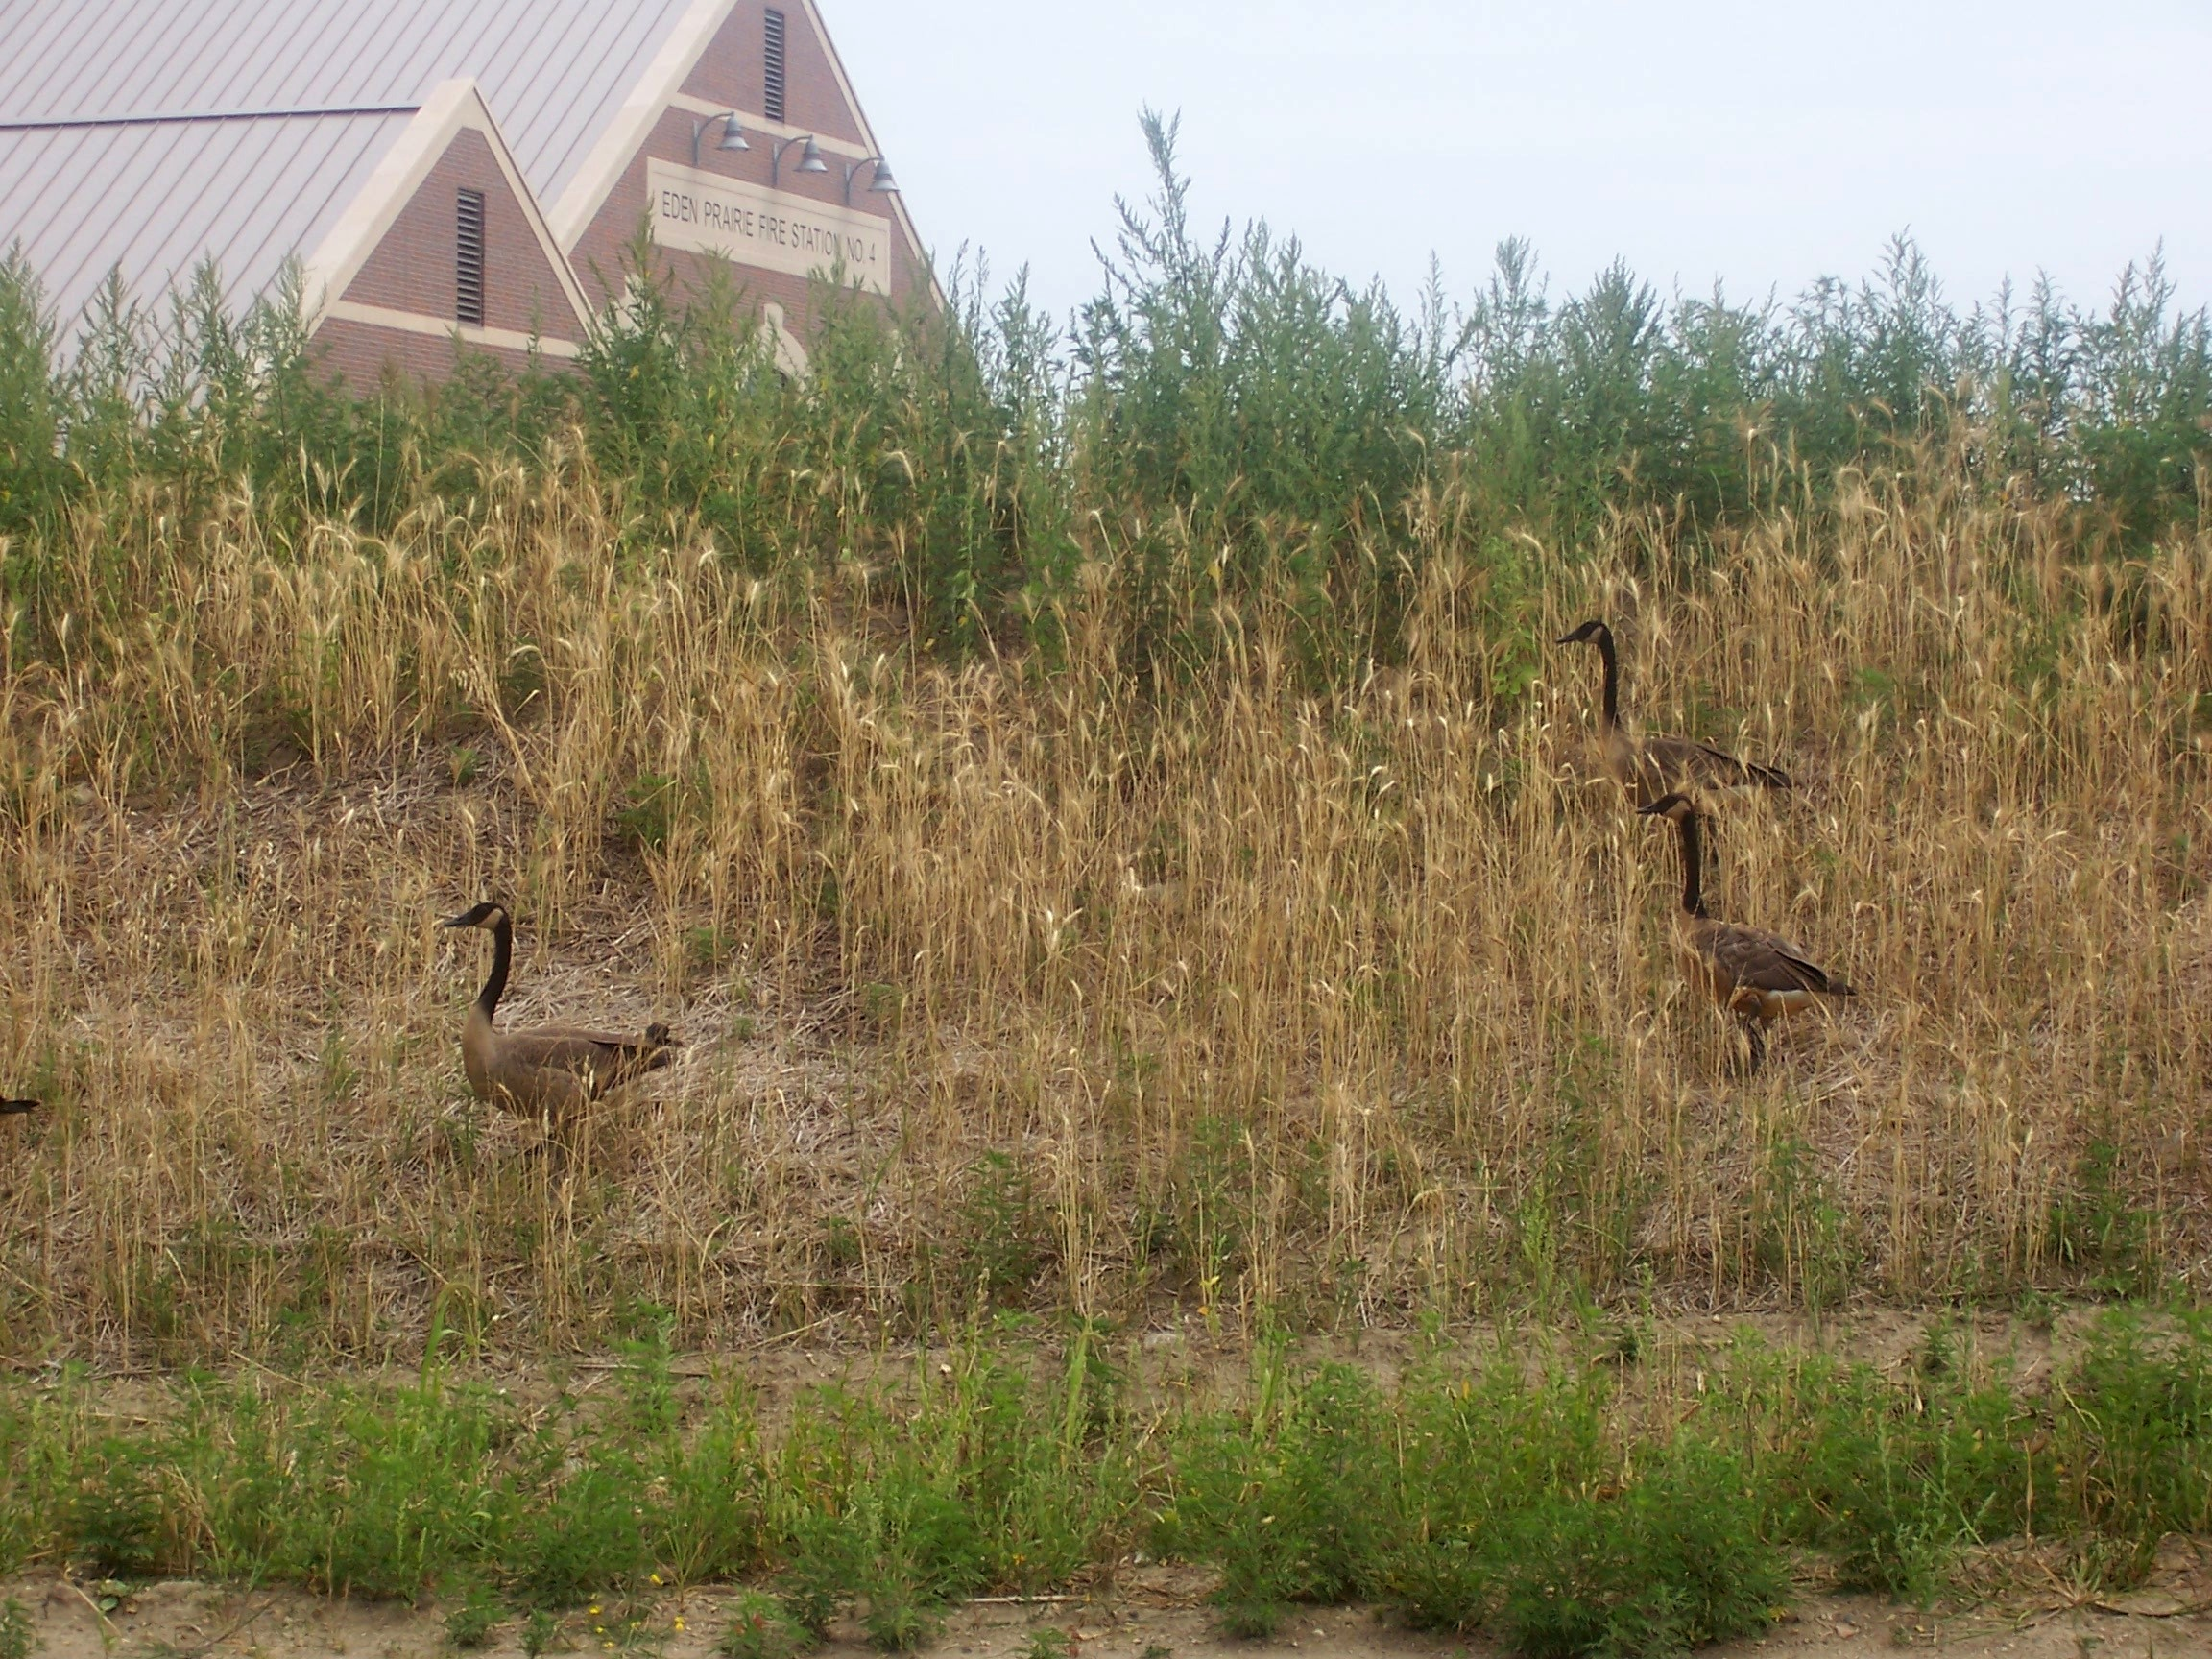 wildlife in minnesota townhome association